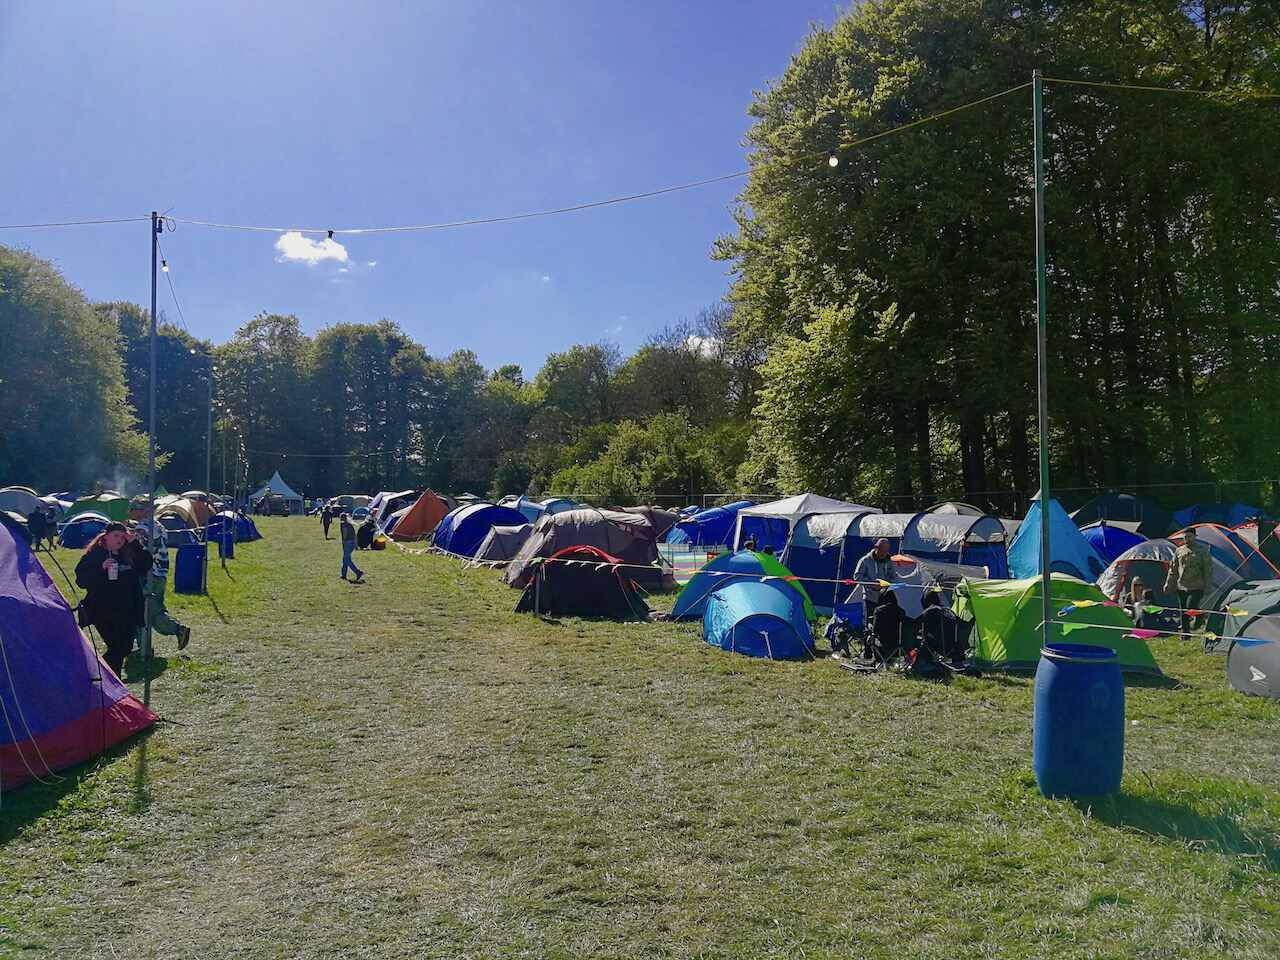 The main campsite at Teddy Rocks